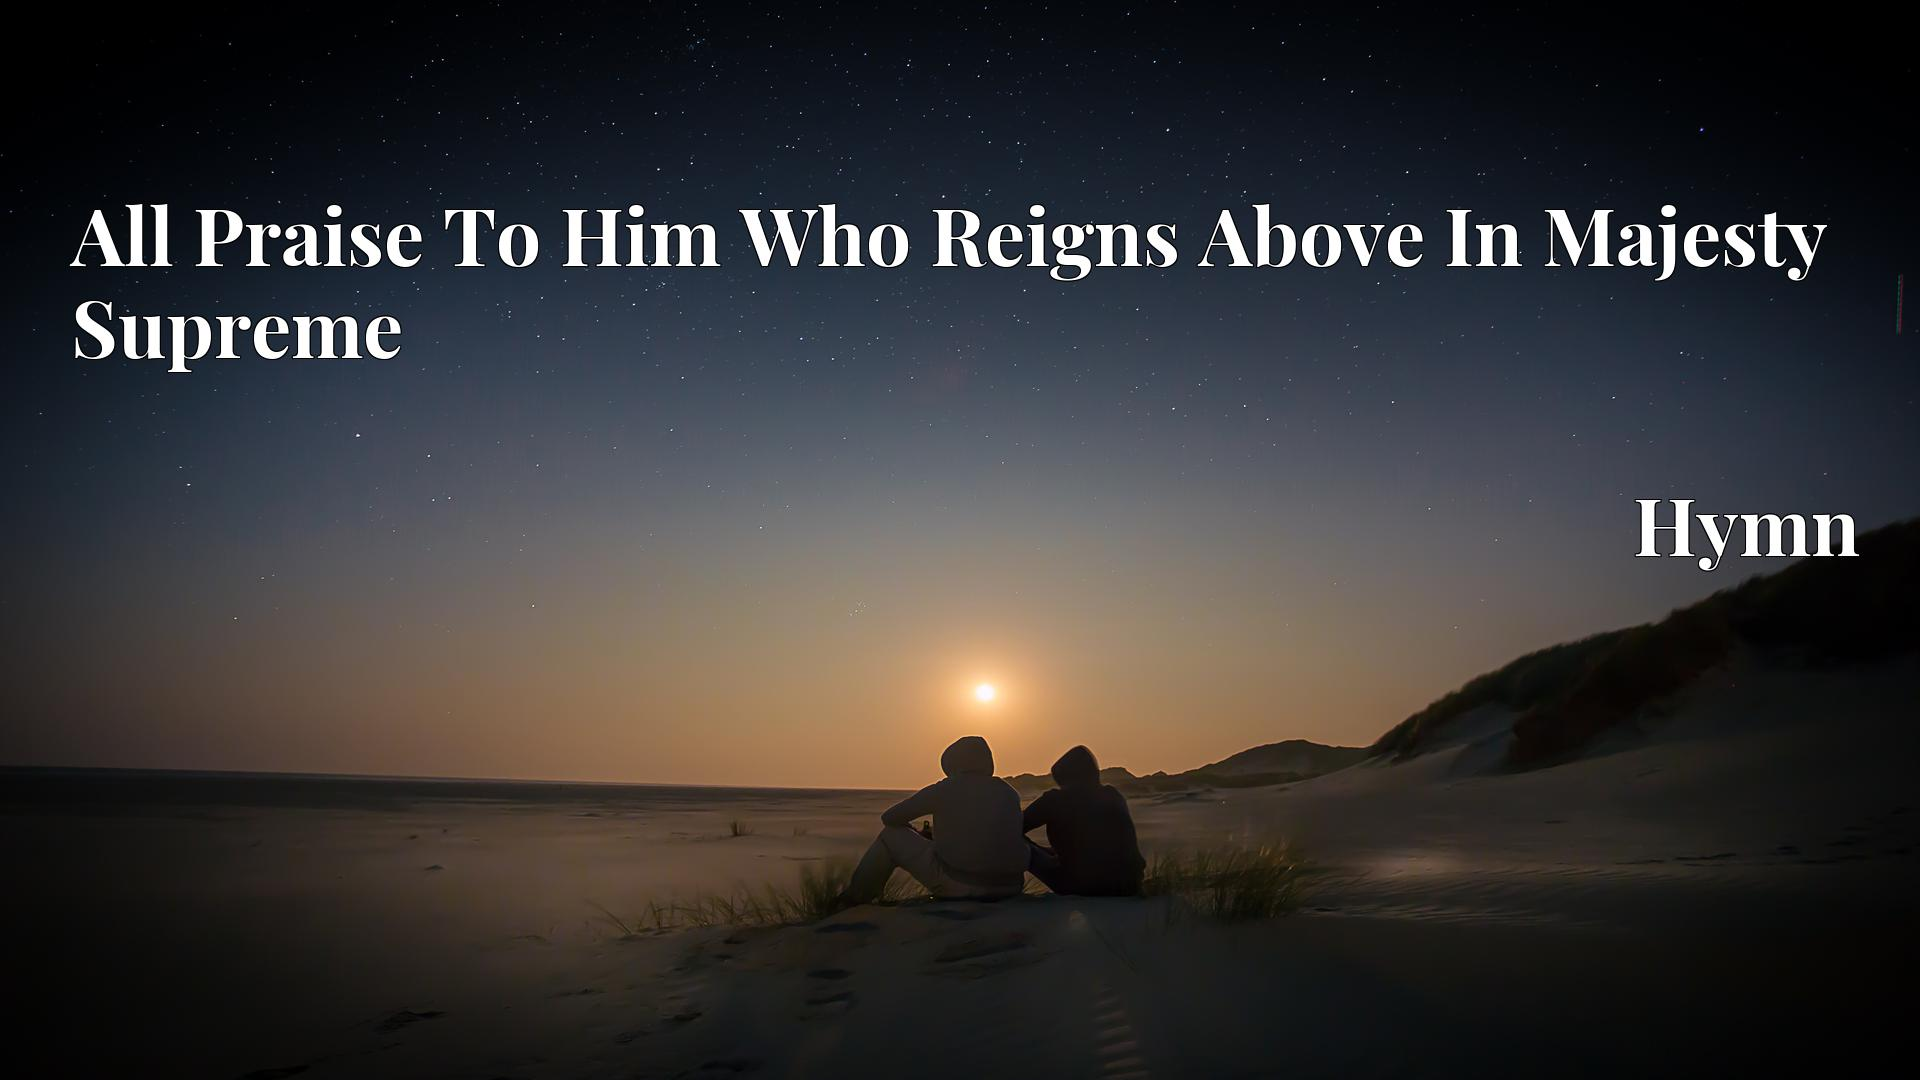 All Praise To Him Who Reigns Above In Majesty Supreme - Hymn